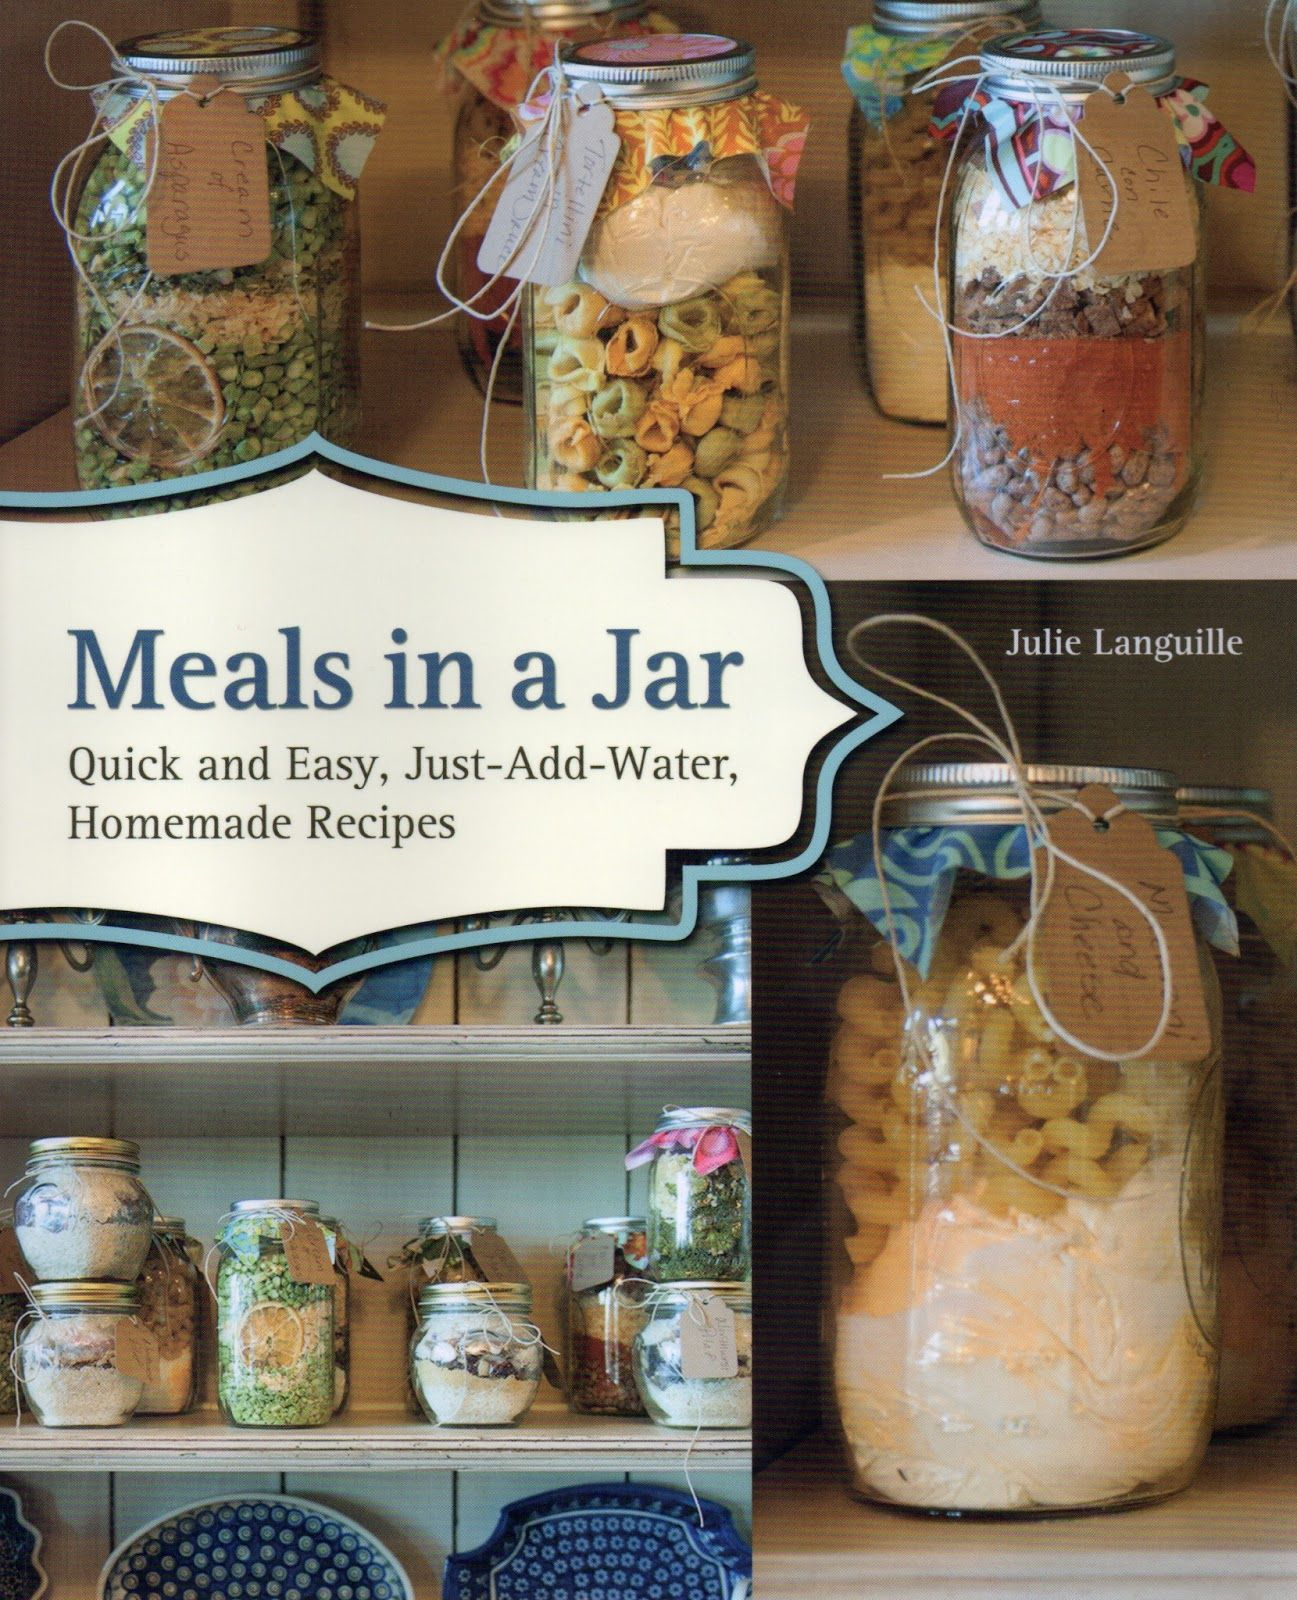 Meals In A Jar Quick And Easy Homemade Recipes Review And